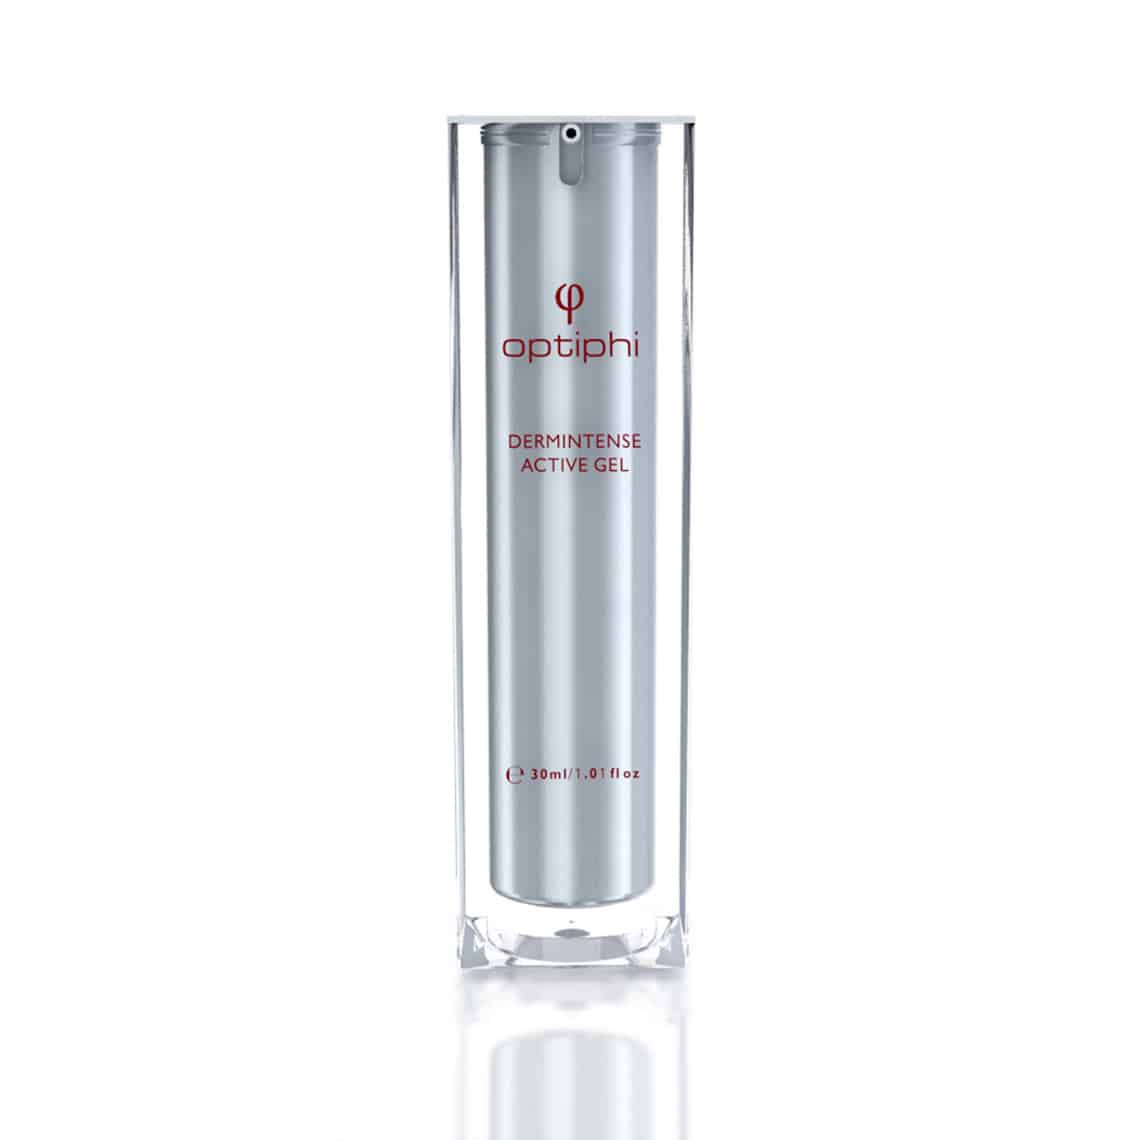 Optiphi Dermintense Activegel